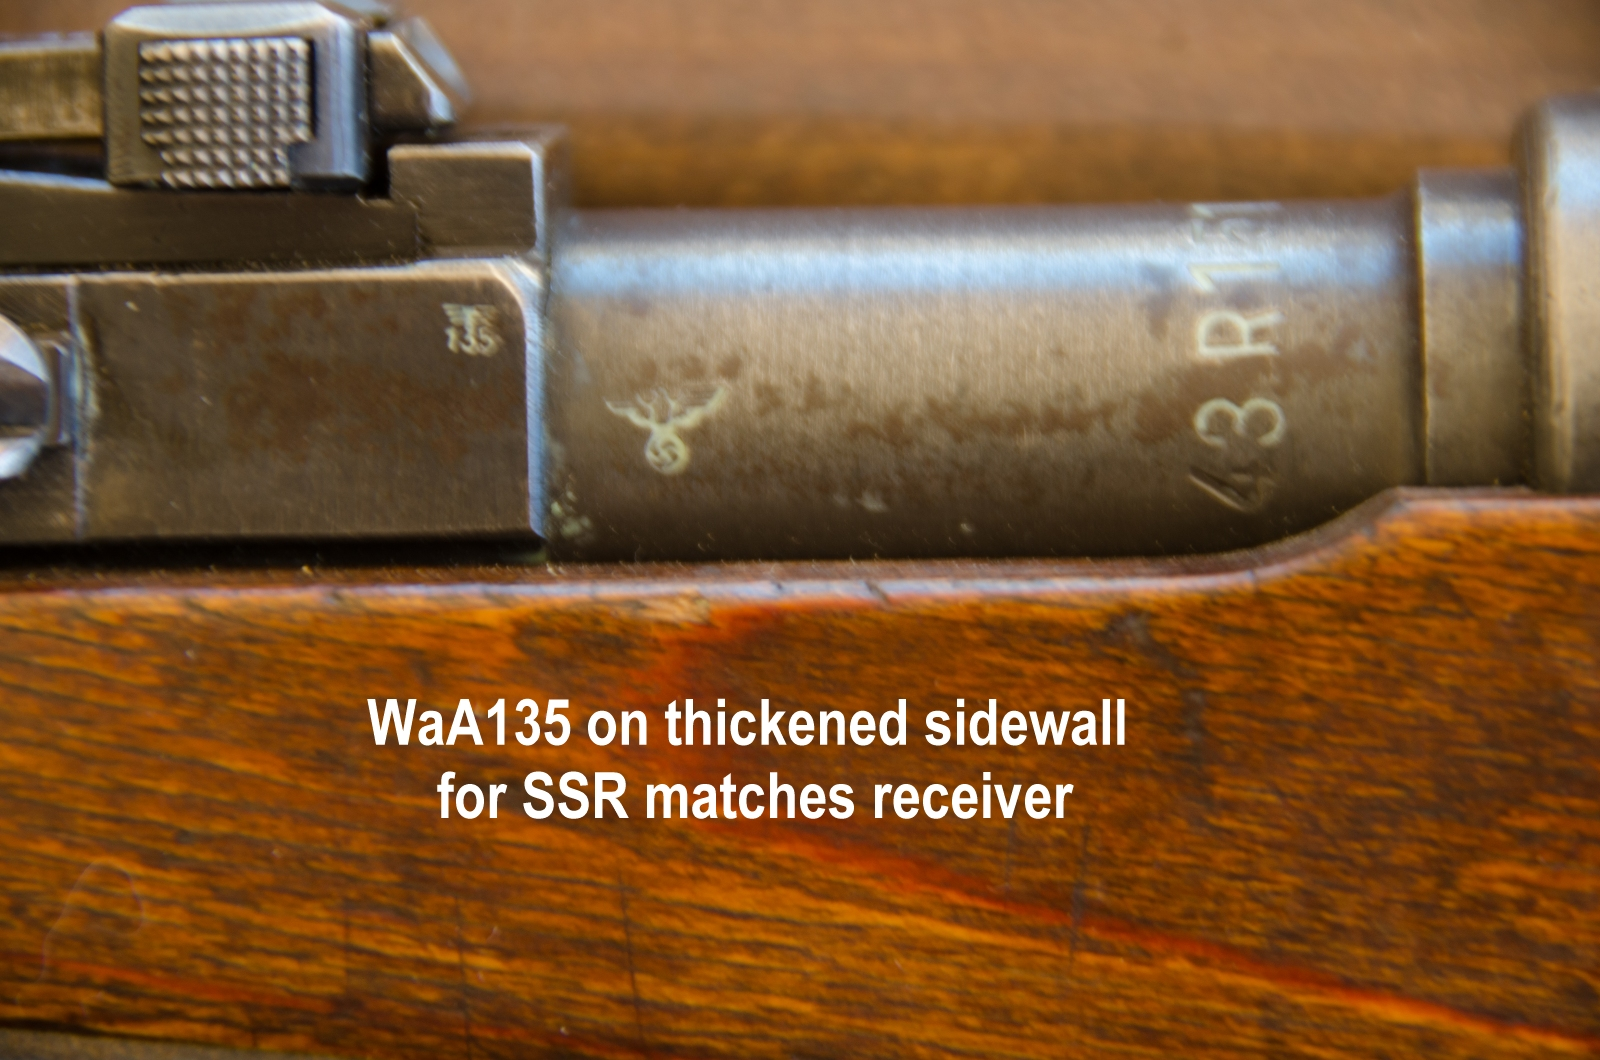 side of barrel showing matching WaA135